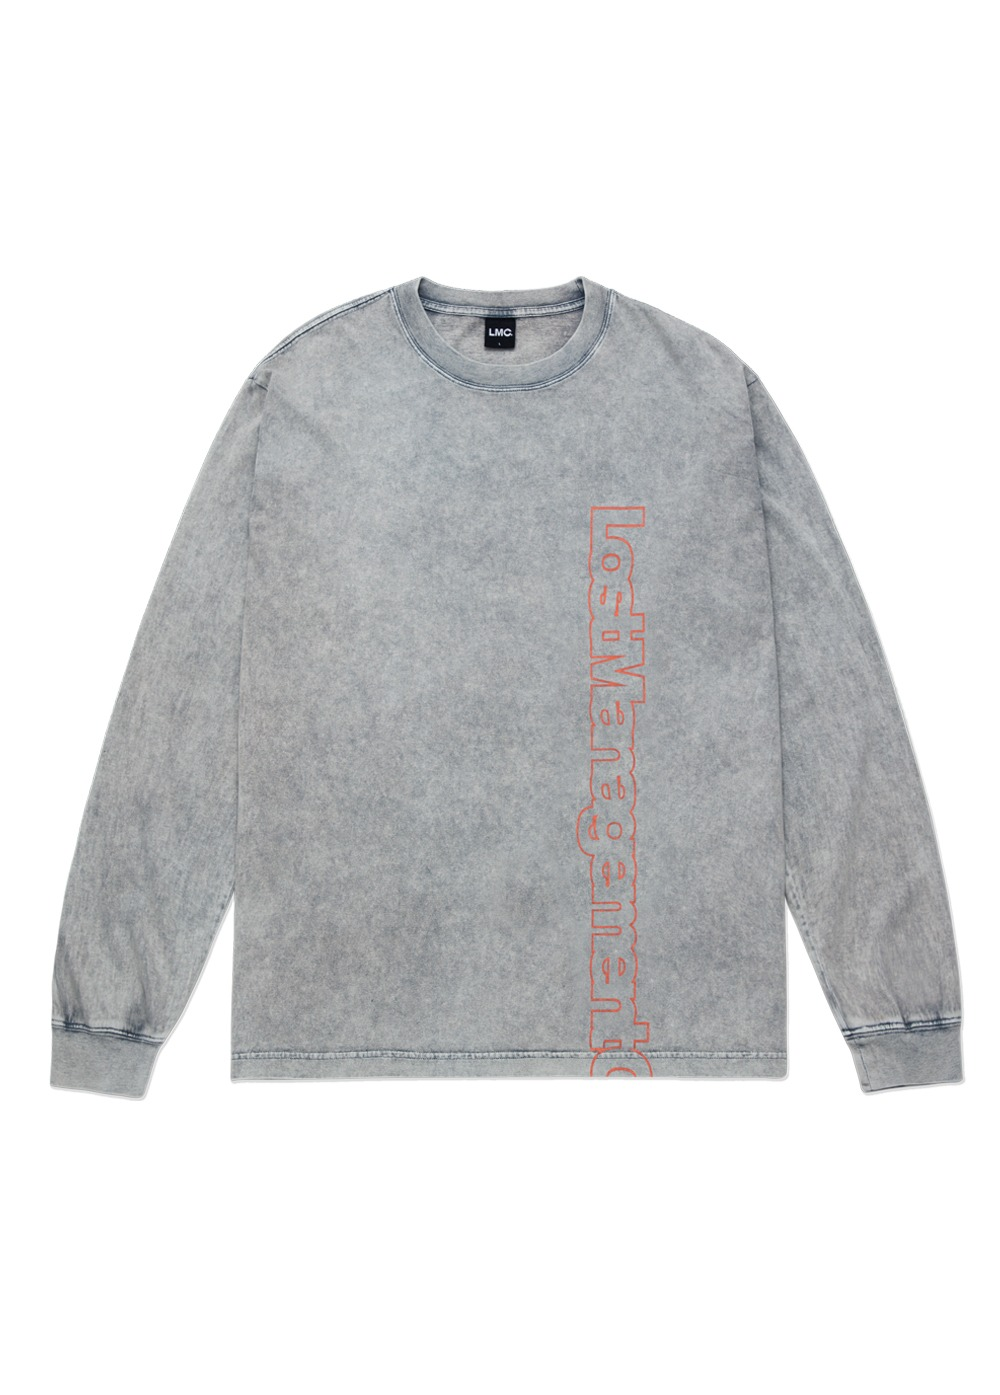 LMC ACID WASHED VERTICAL FN LONG SLV TEE gray